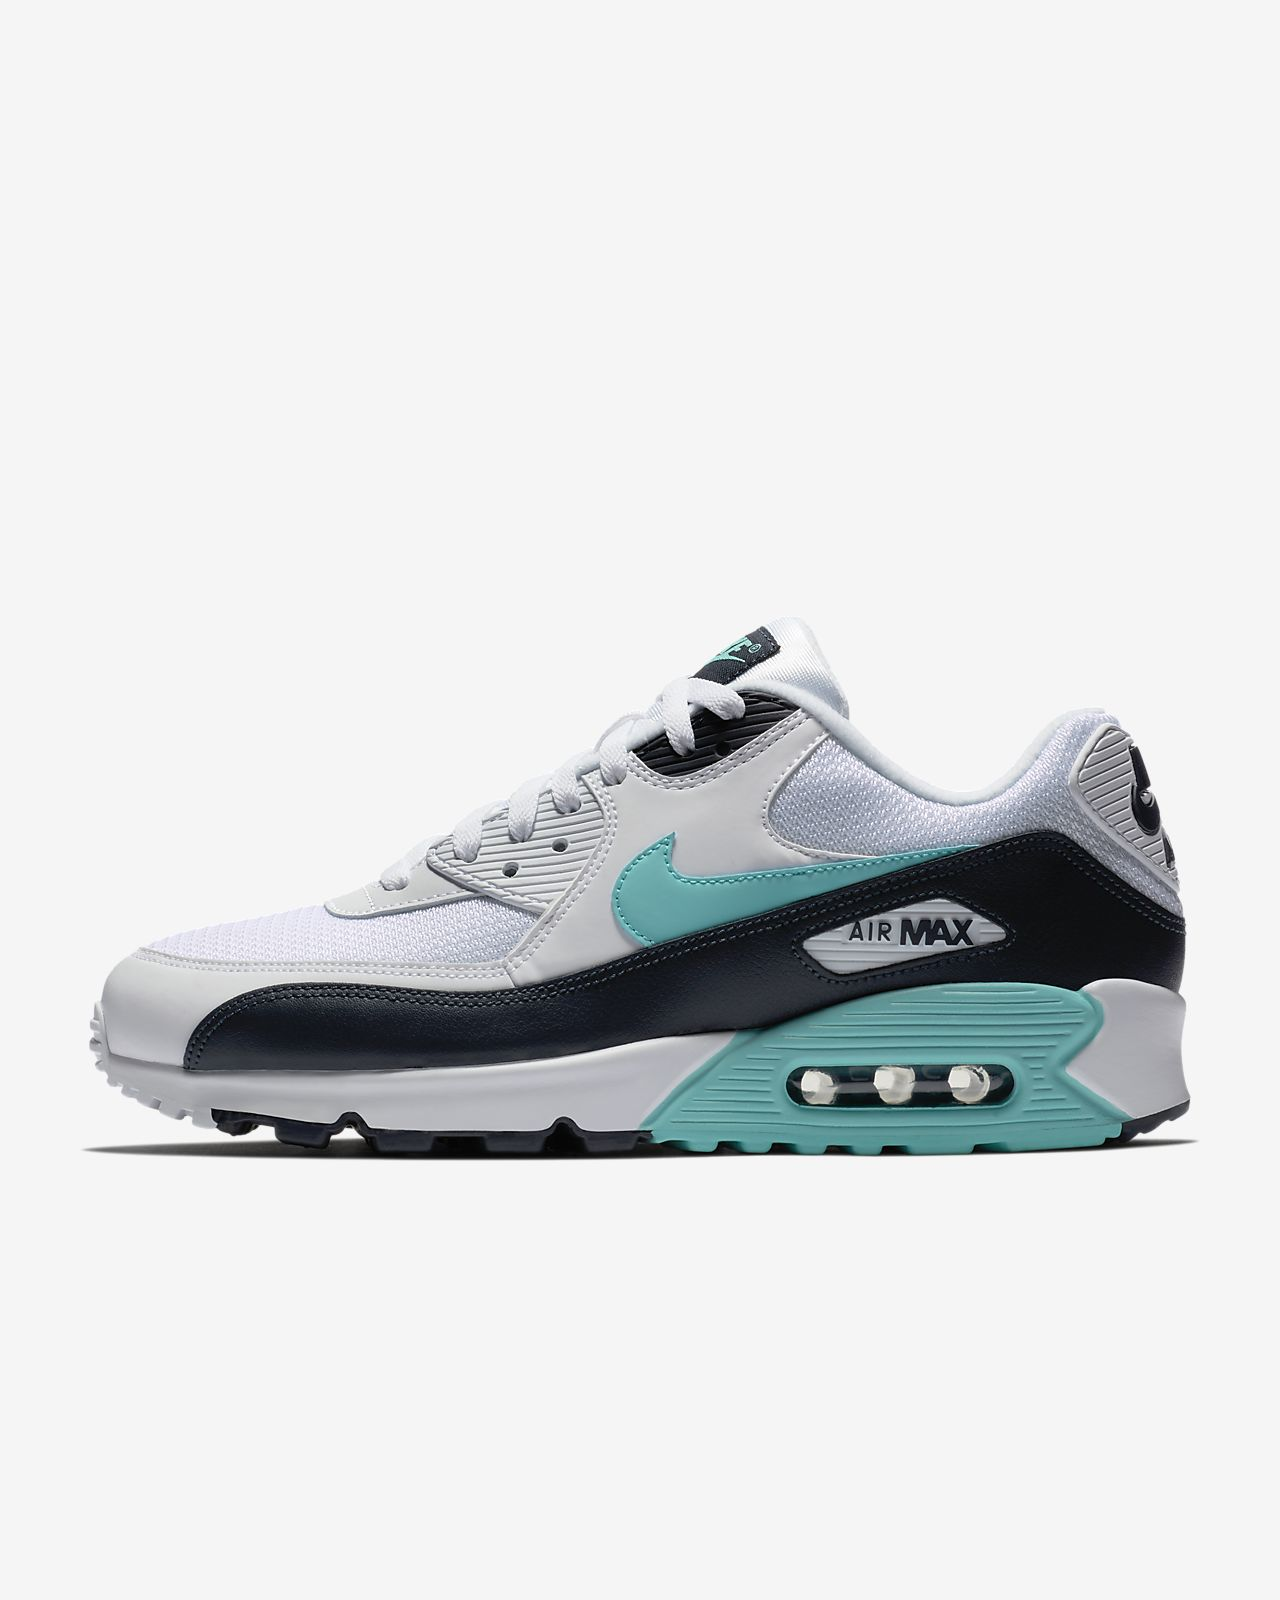 nike air max 90 size 7 womens